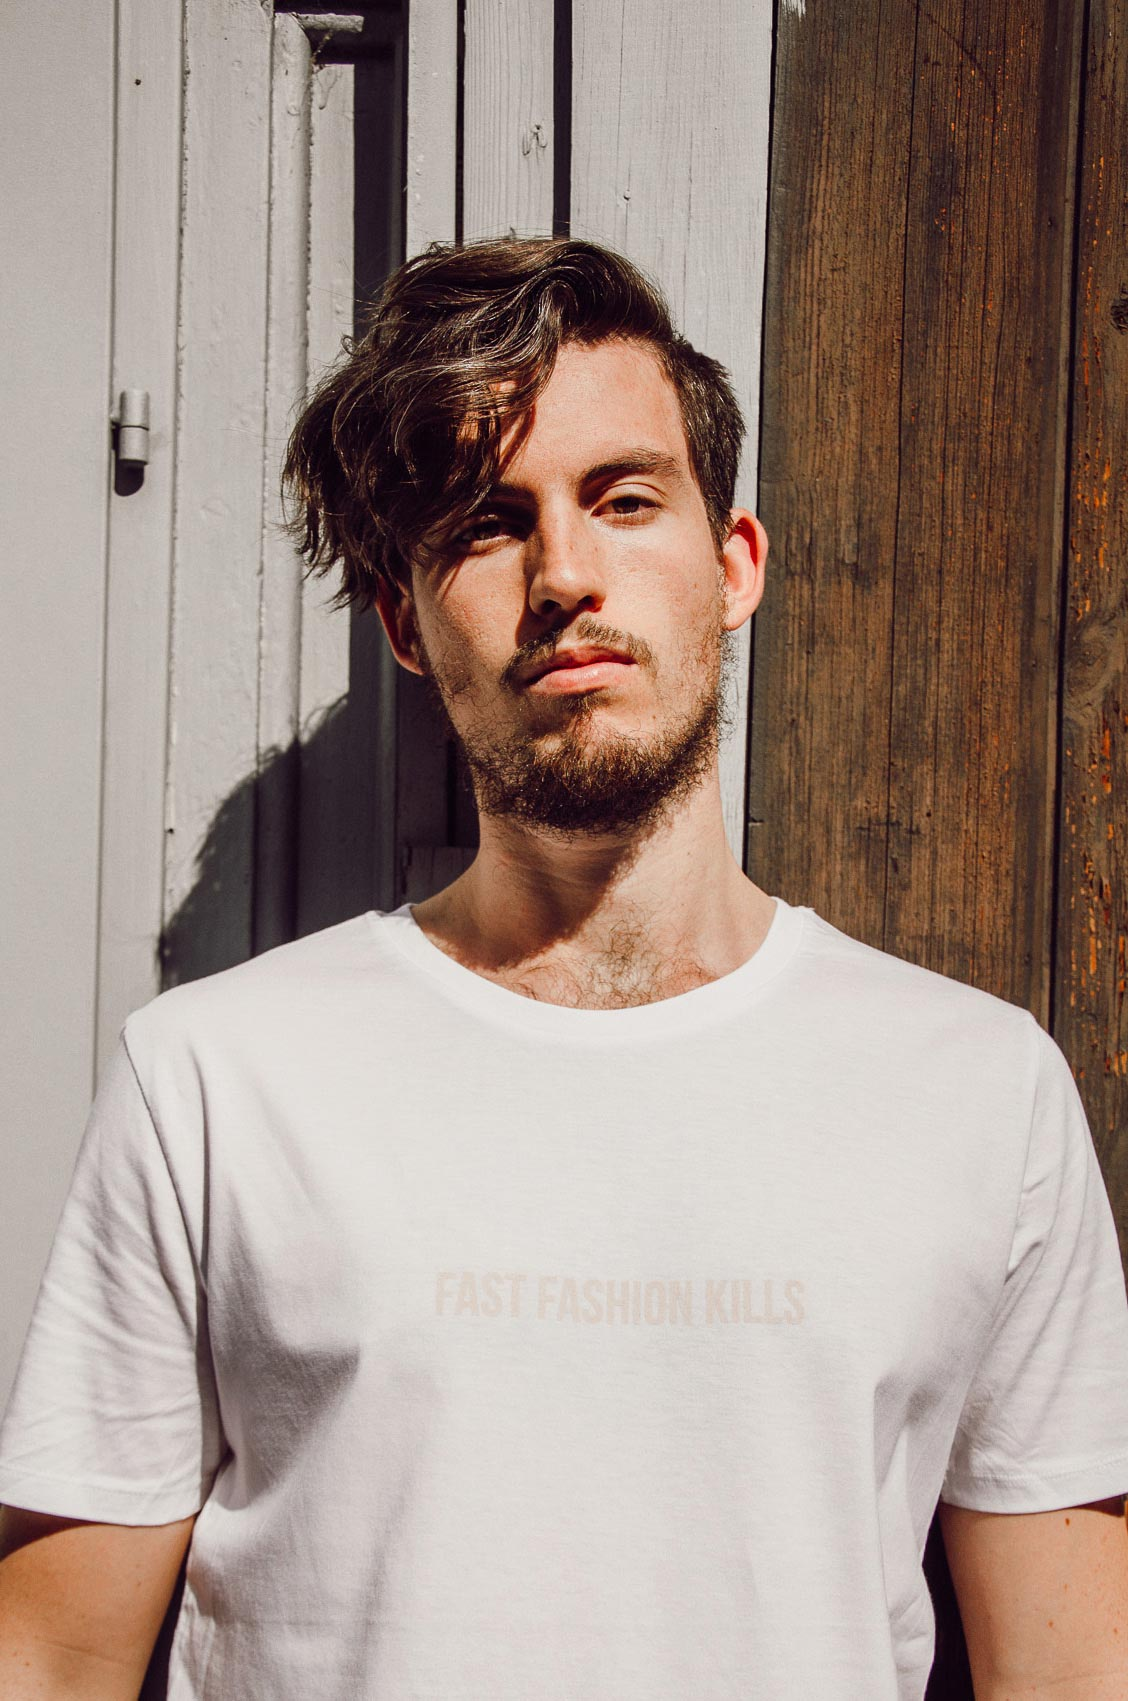 FAST FASHION KILLS SHIRT (unisex)